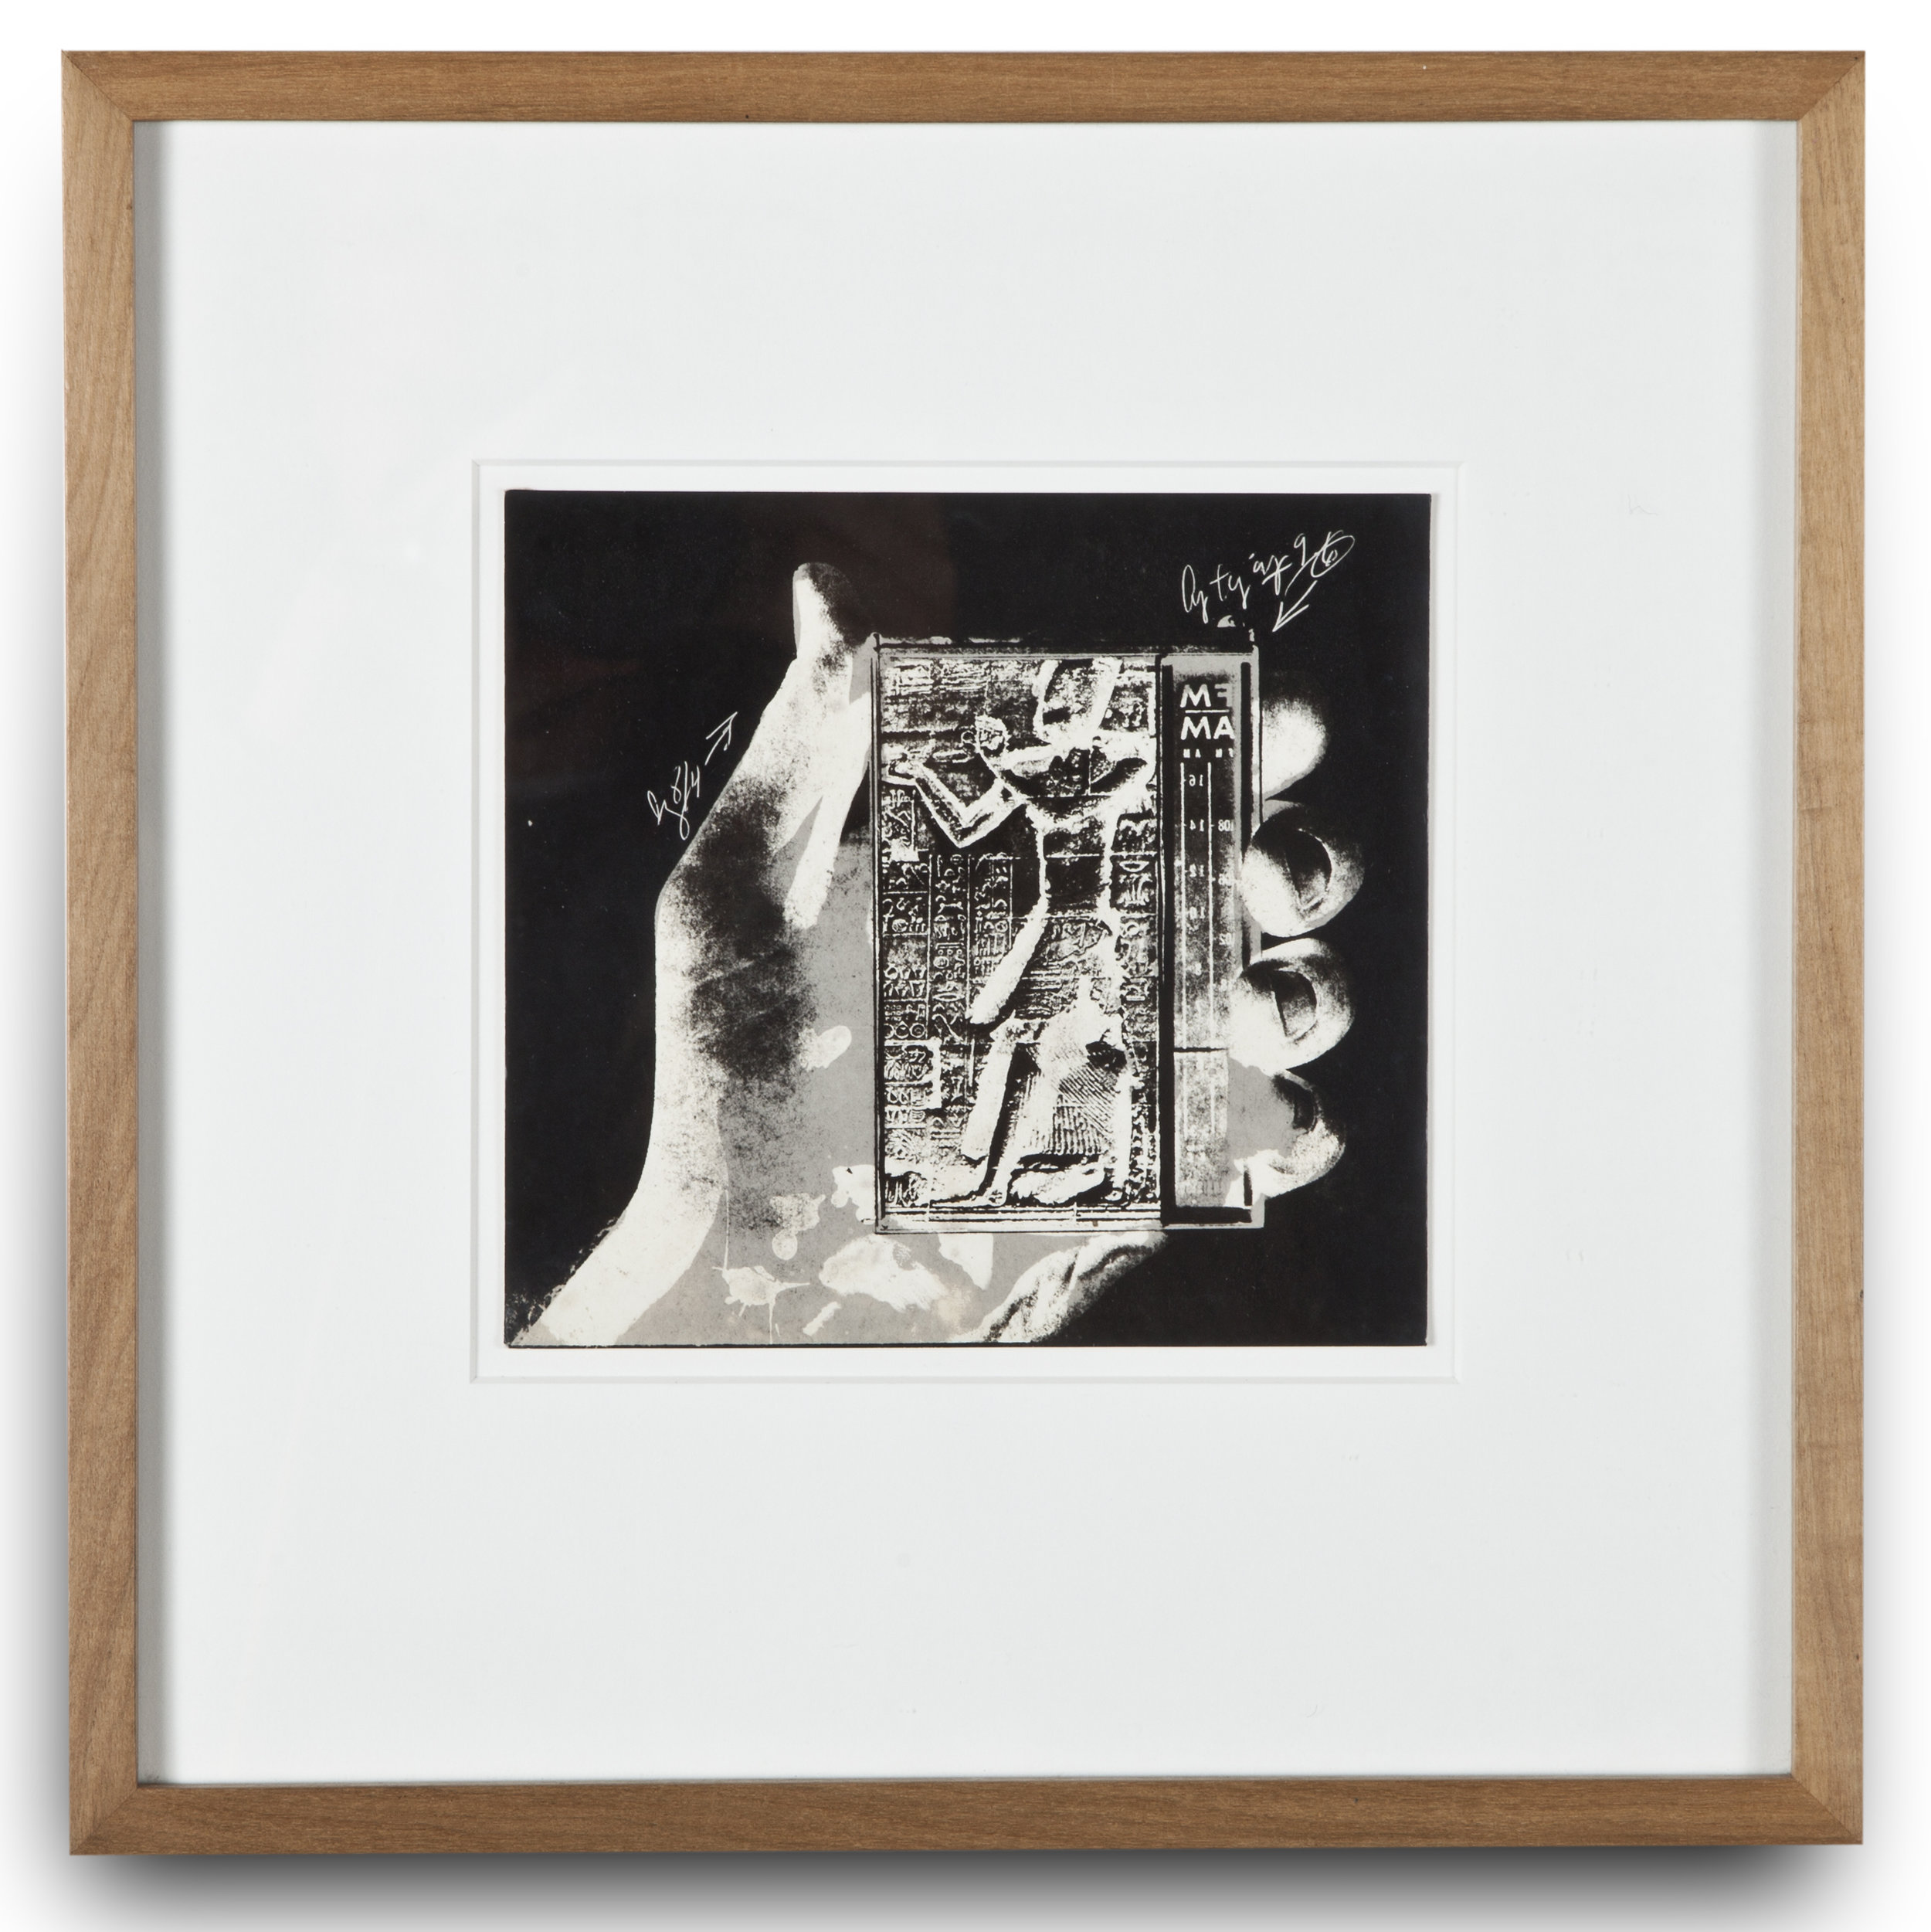 "Copy of ""Untitled #102"" , c. 1964-76, Verifax collage, 6 x 6 1/2 inches, framed 12 x 12 1/2 inches"